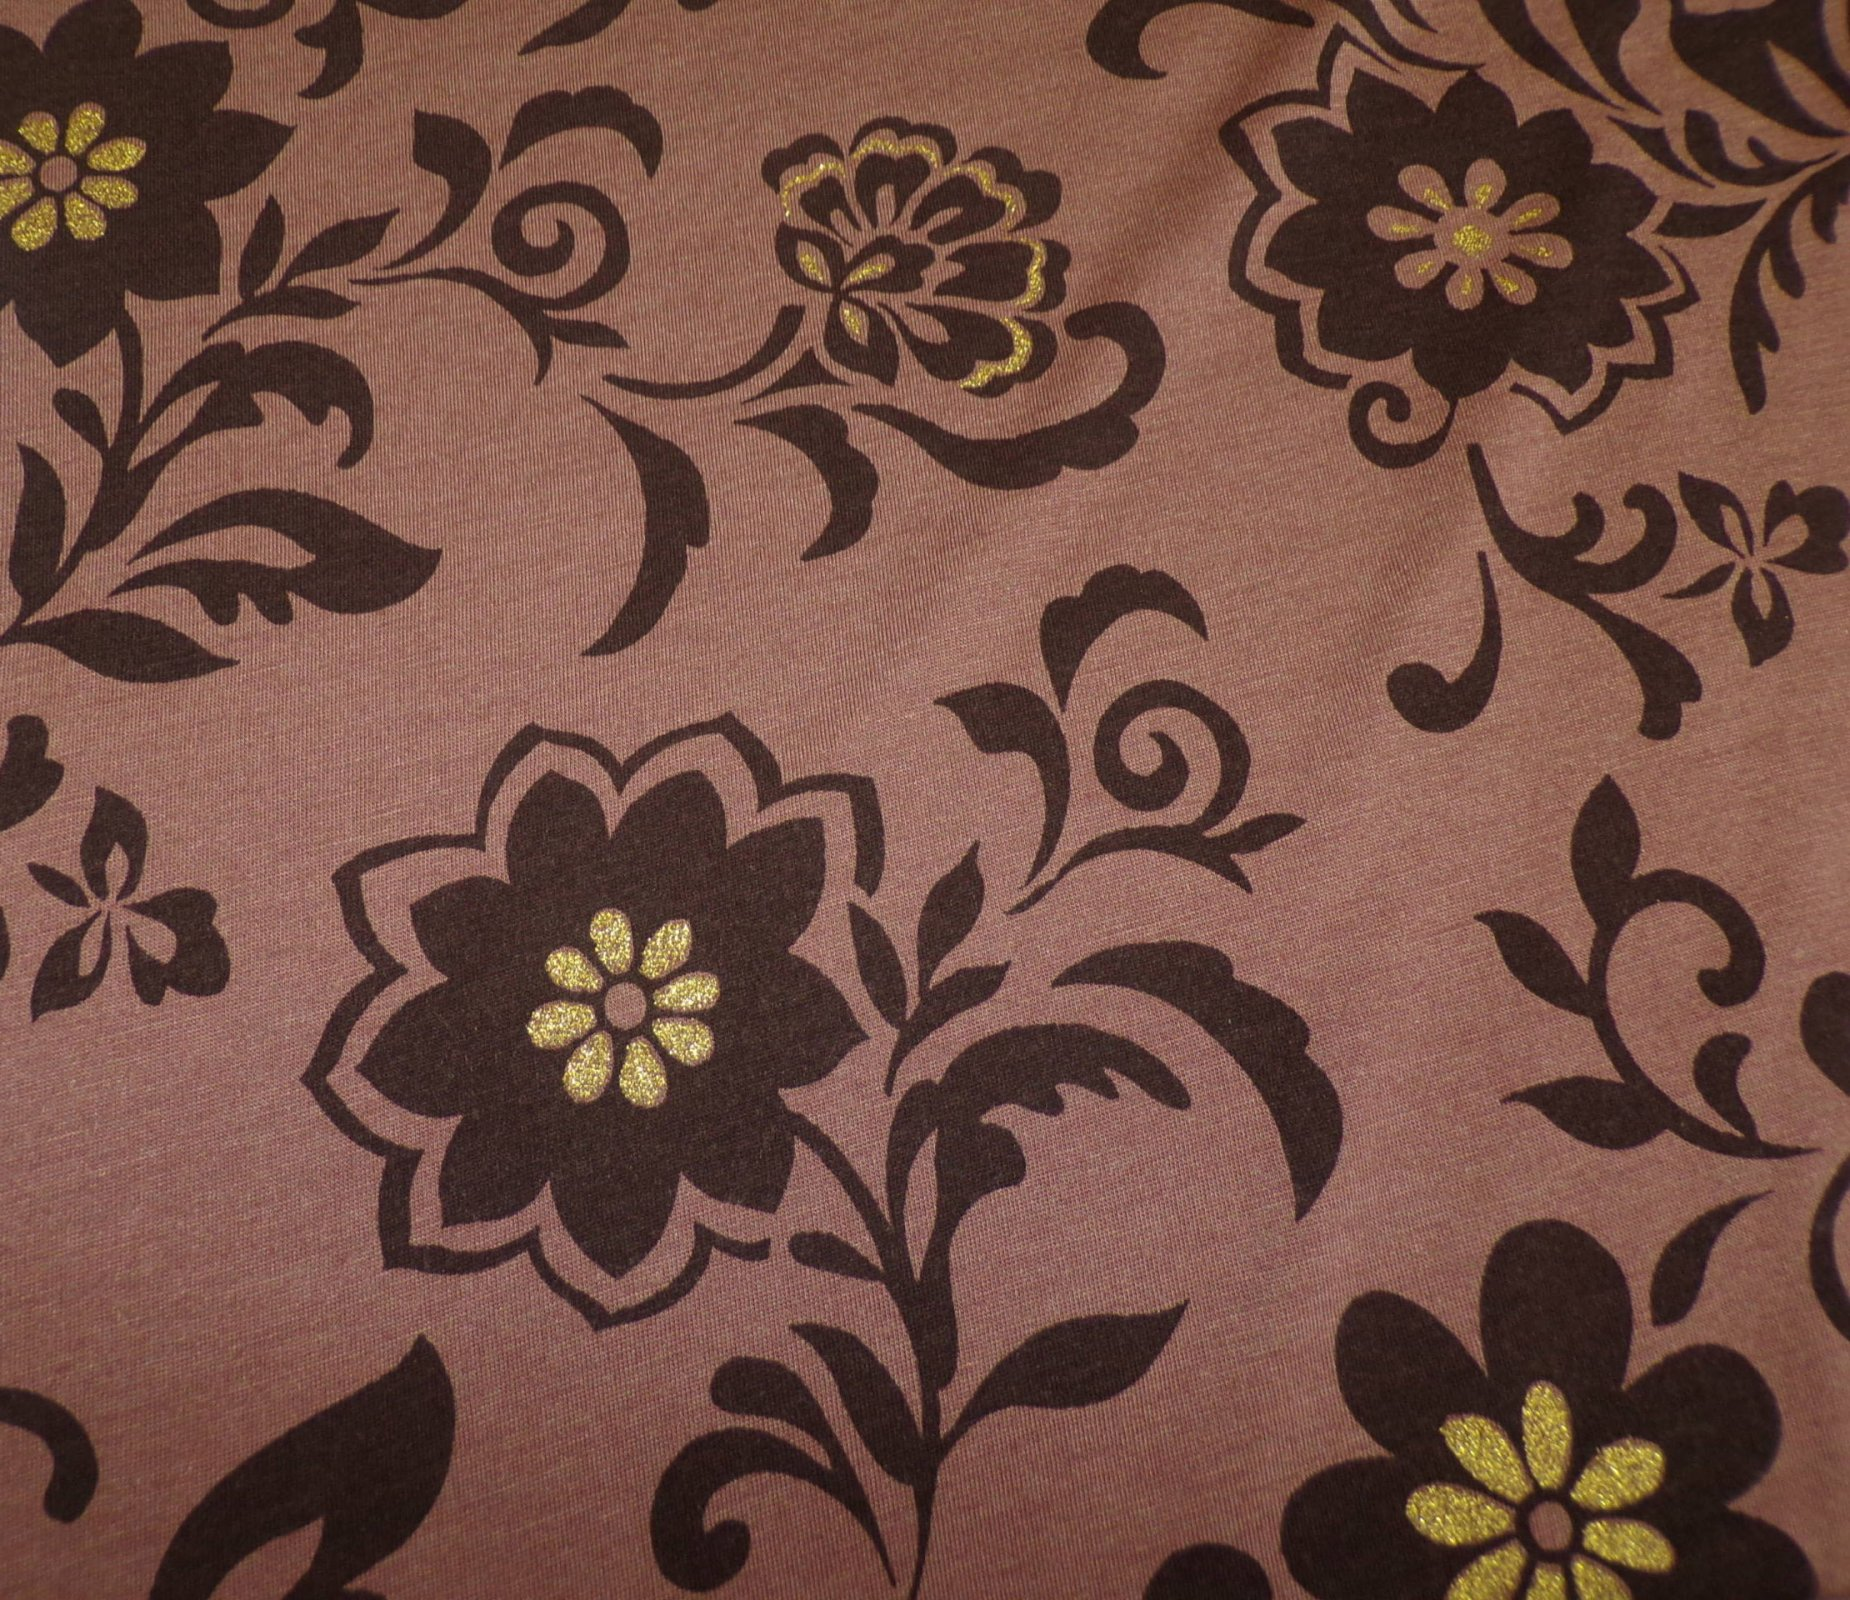 Jersey - Brown Black and Gold Floral